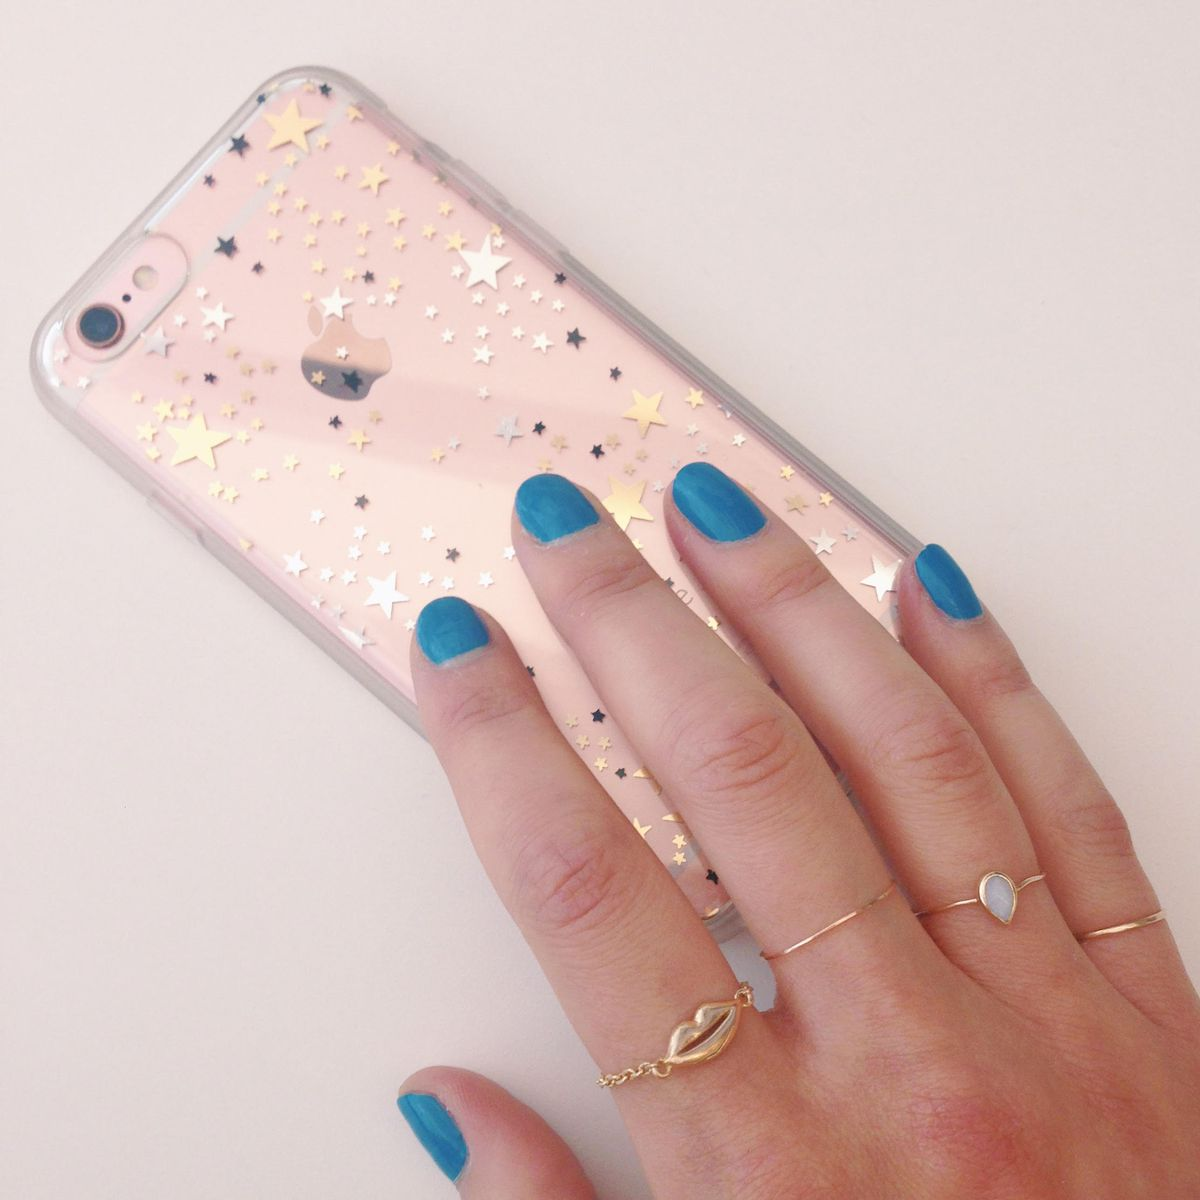 The author with her star-printed Sonix phone case.